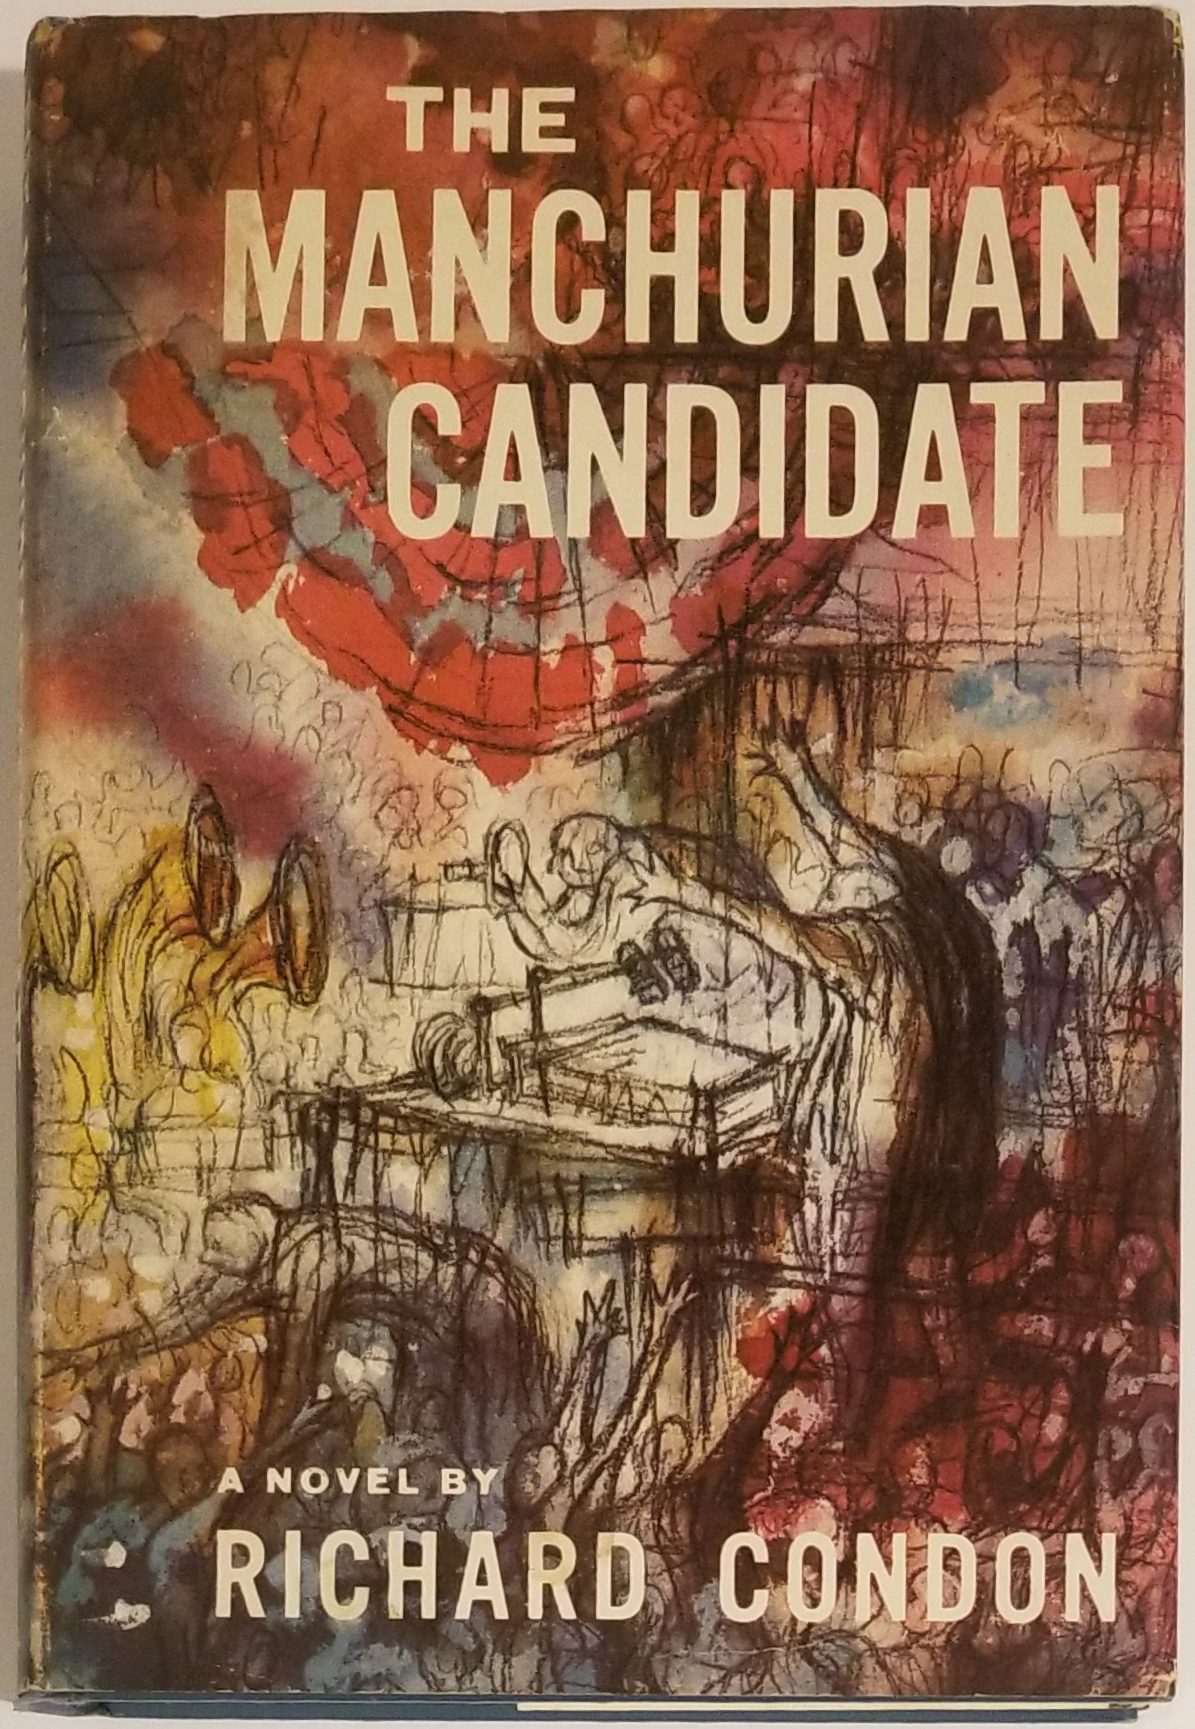 THE MANCHURIAN CANDIDATE. Richard Condon.